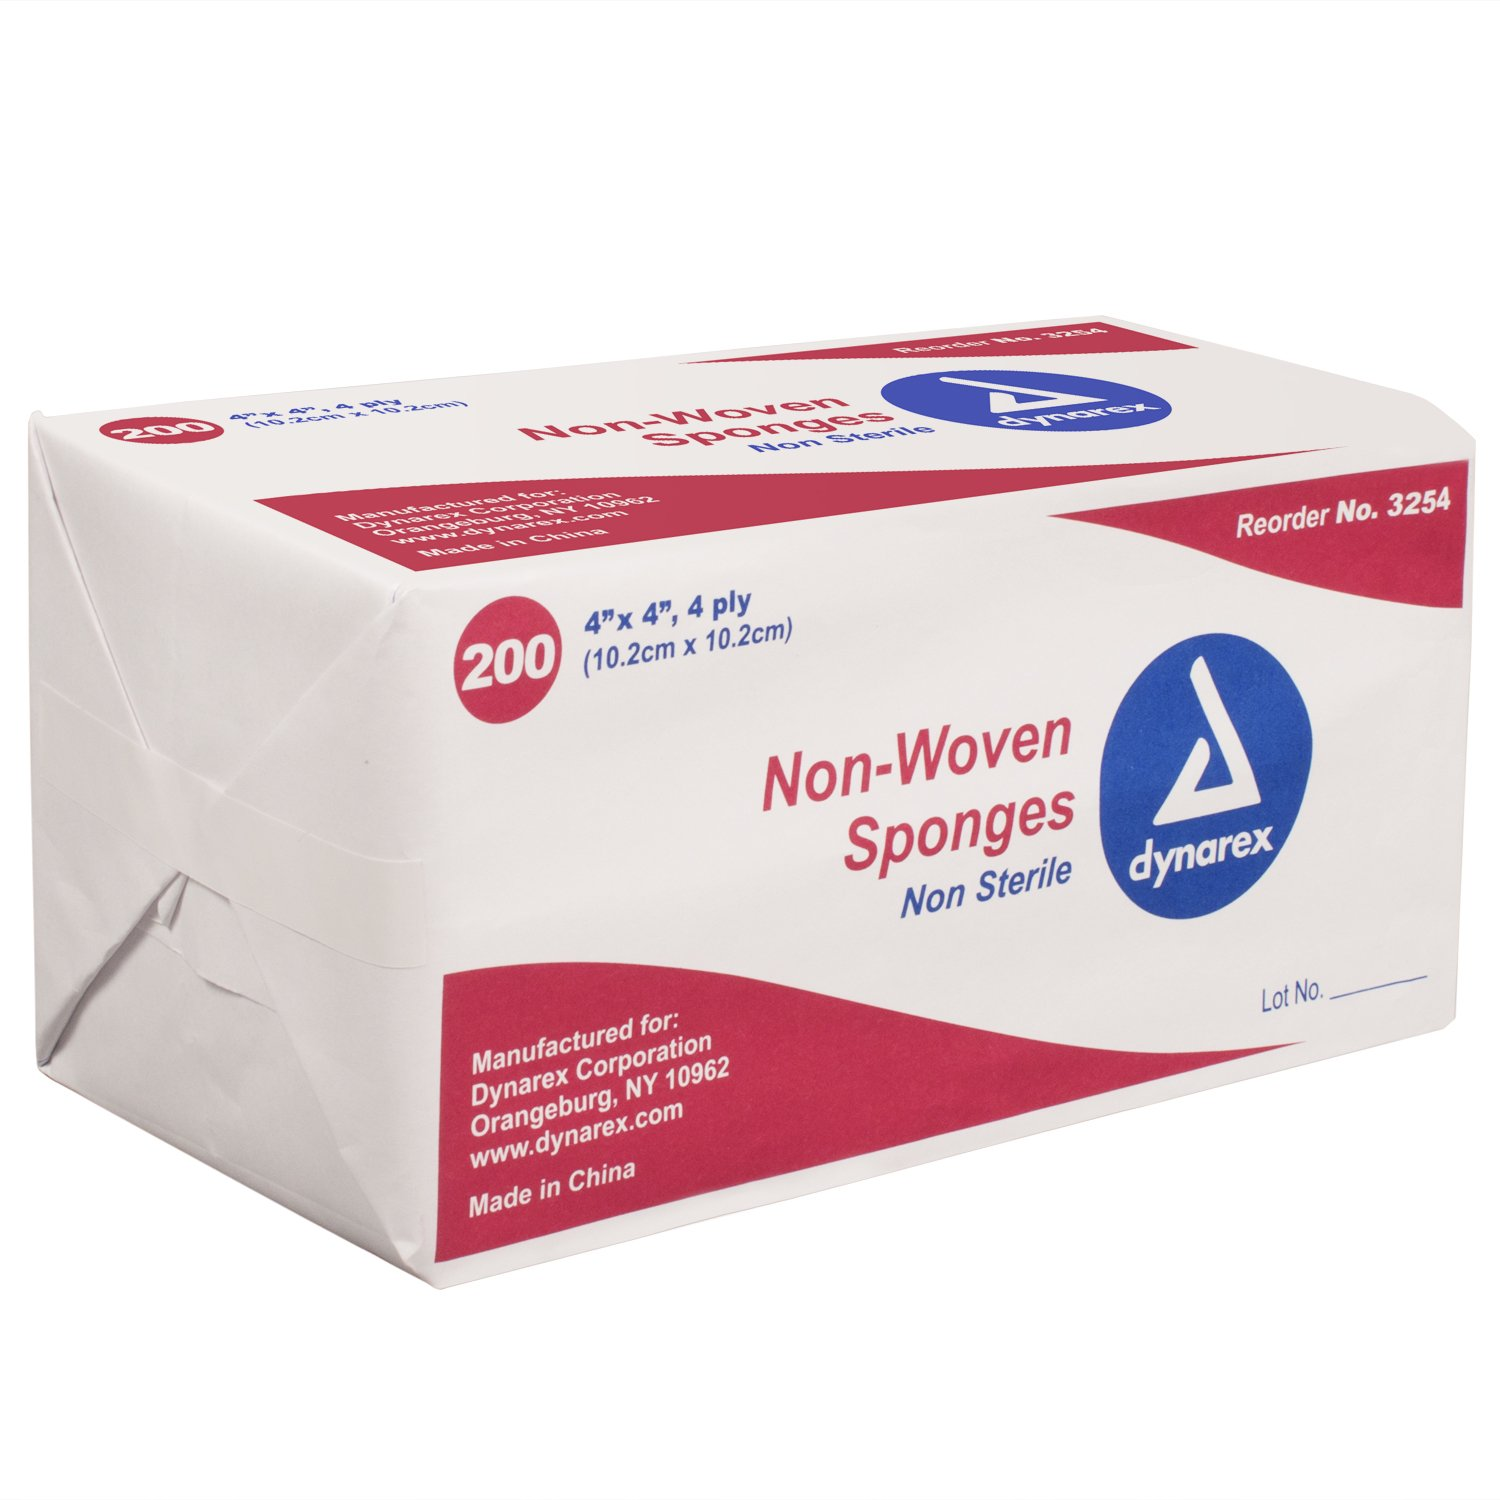 Dynarex 3254 Non-Woven Sponge 4 Ply, 200 Count - Pack of 10 by Dynarex